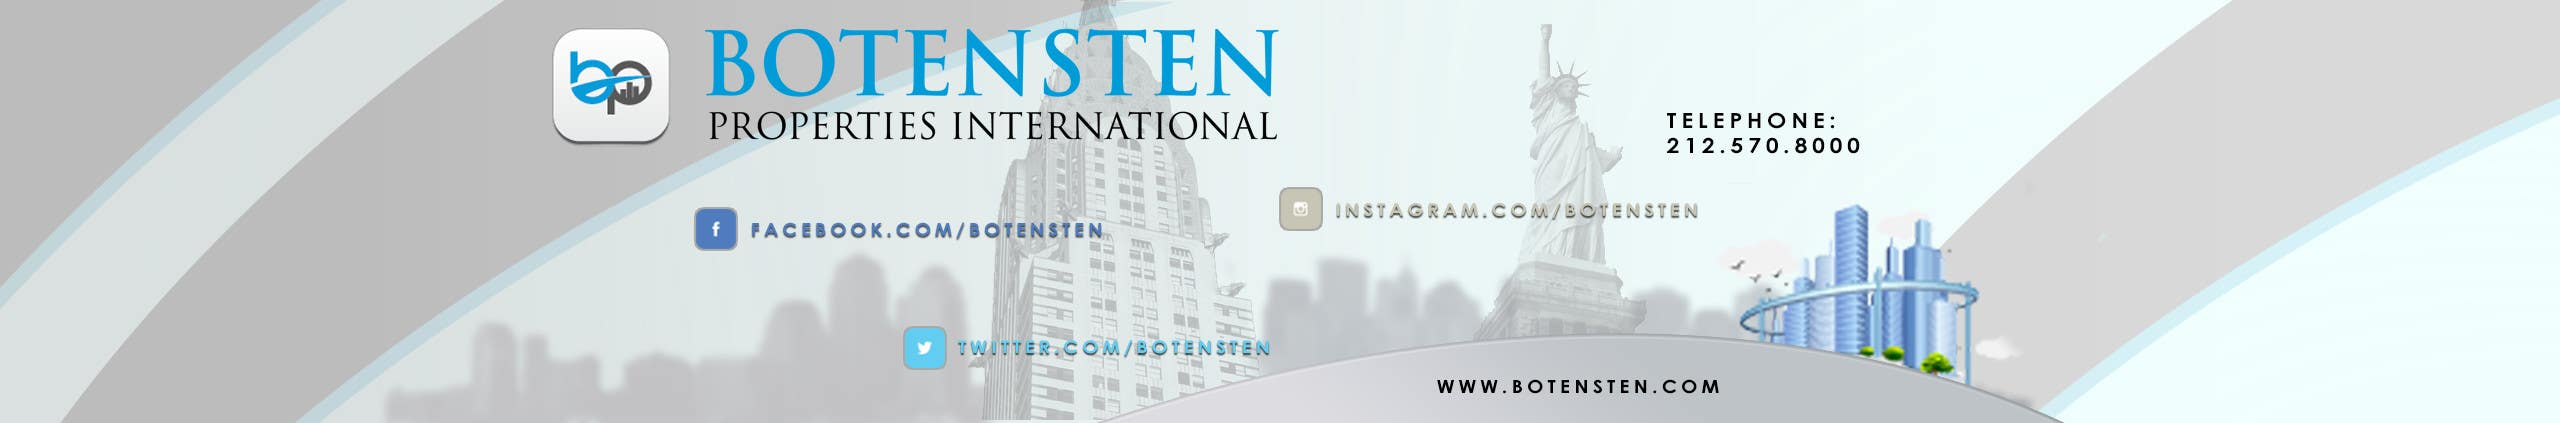 Contest Entry #11 for Design Youtube Cover for NYC Real Estate Firm